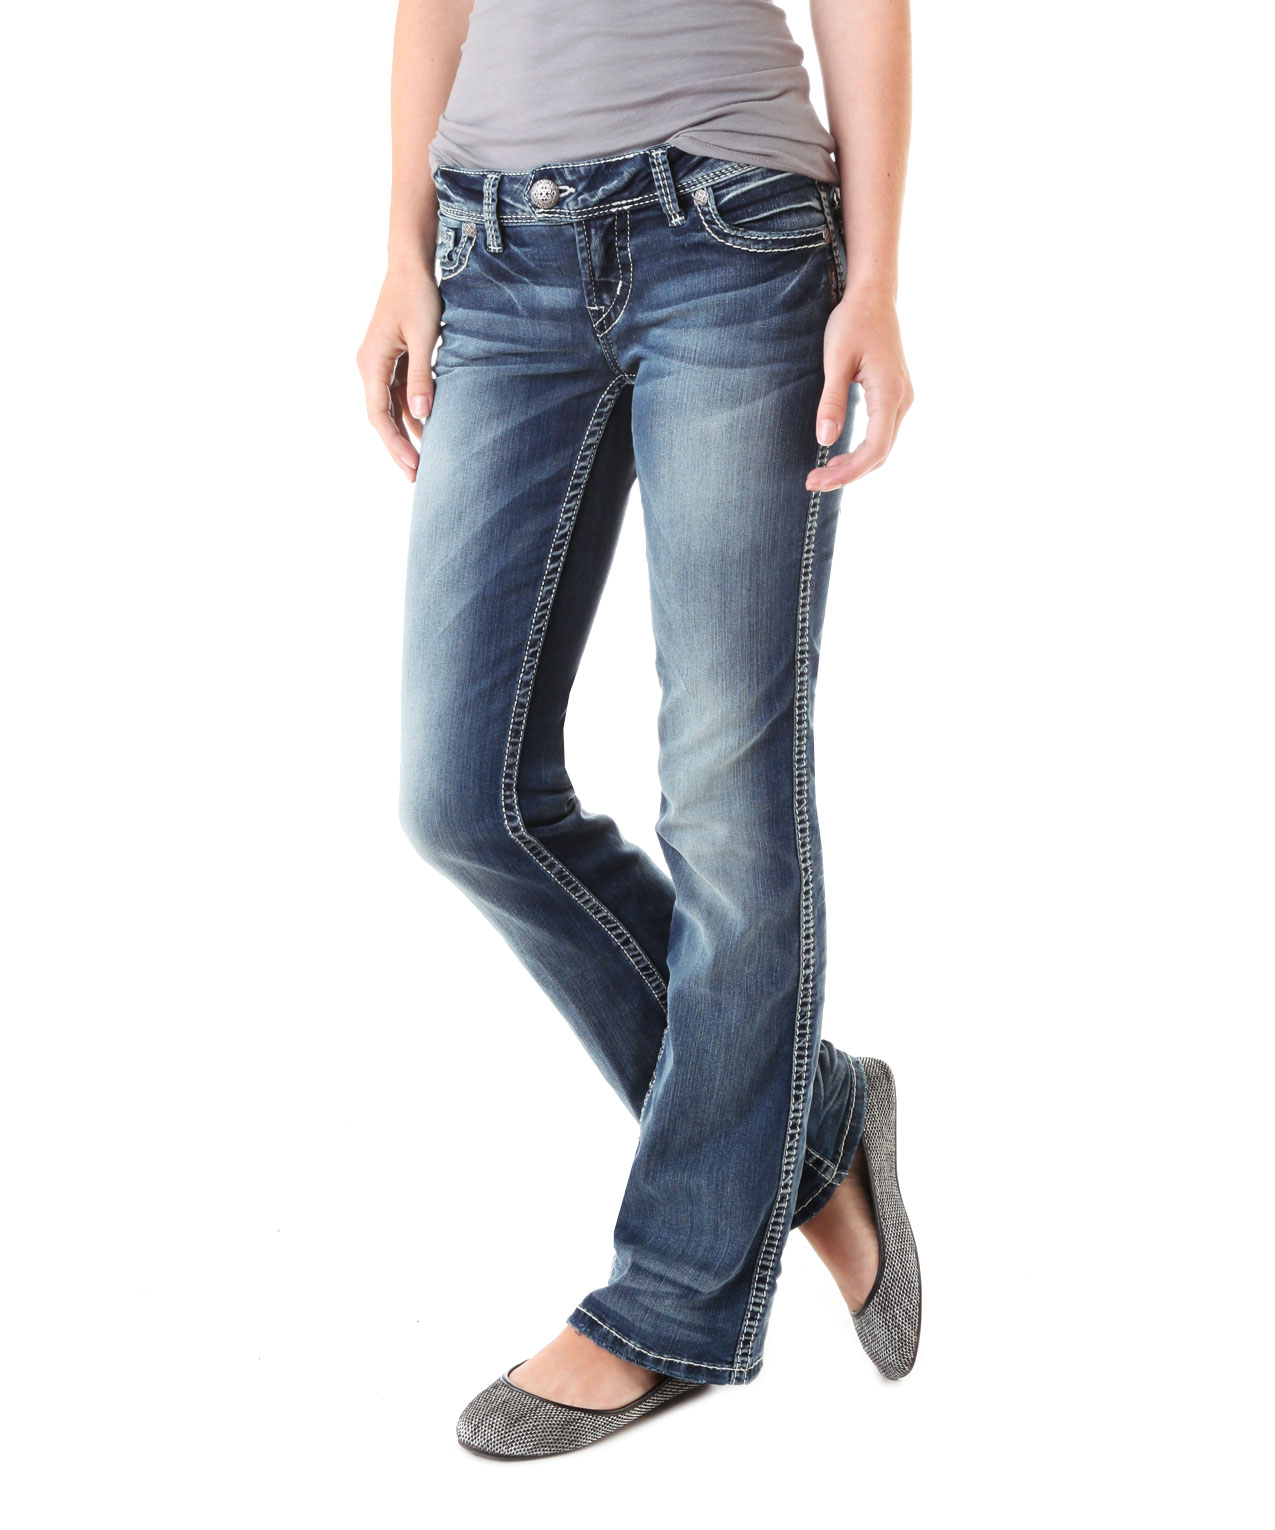 Polyester Jeans Mens